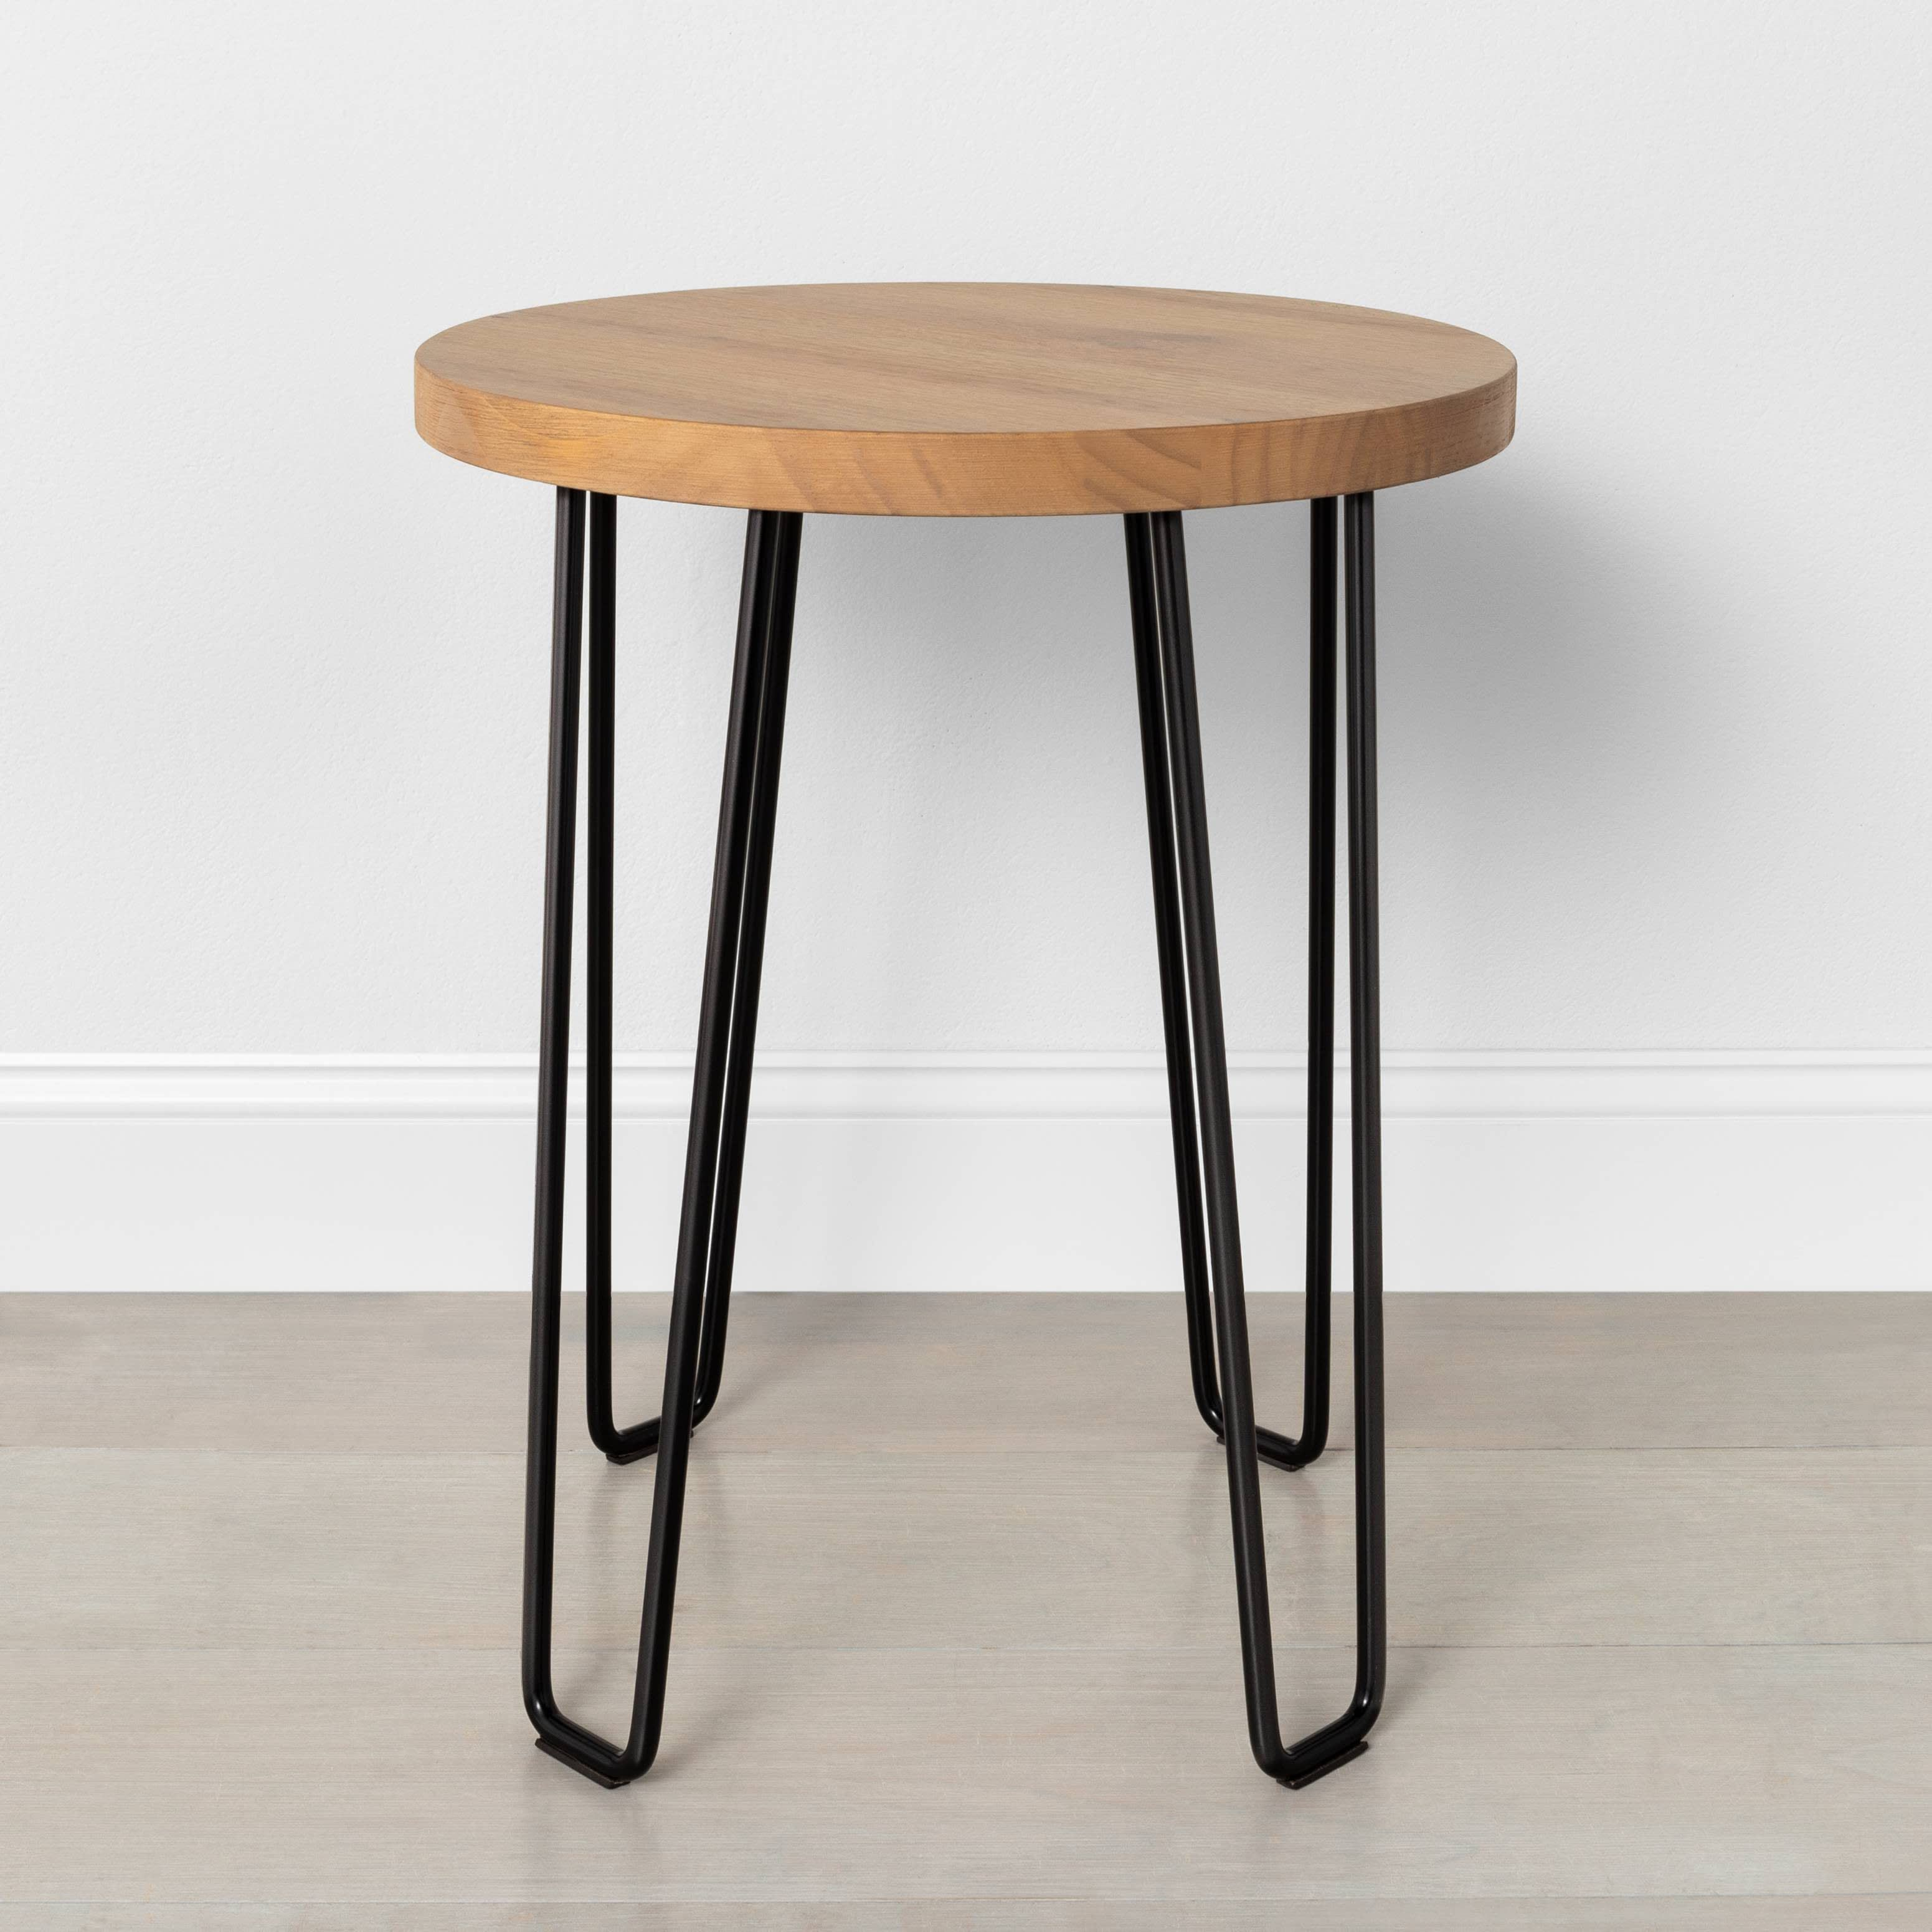 Chip And Joanna Gaines Are Launching An Inexpensive Furniture Line At Target And We Got An Exclusive Sneak Peek Magnolia Furniture Accent Table Round Accent Table